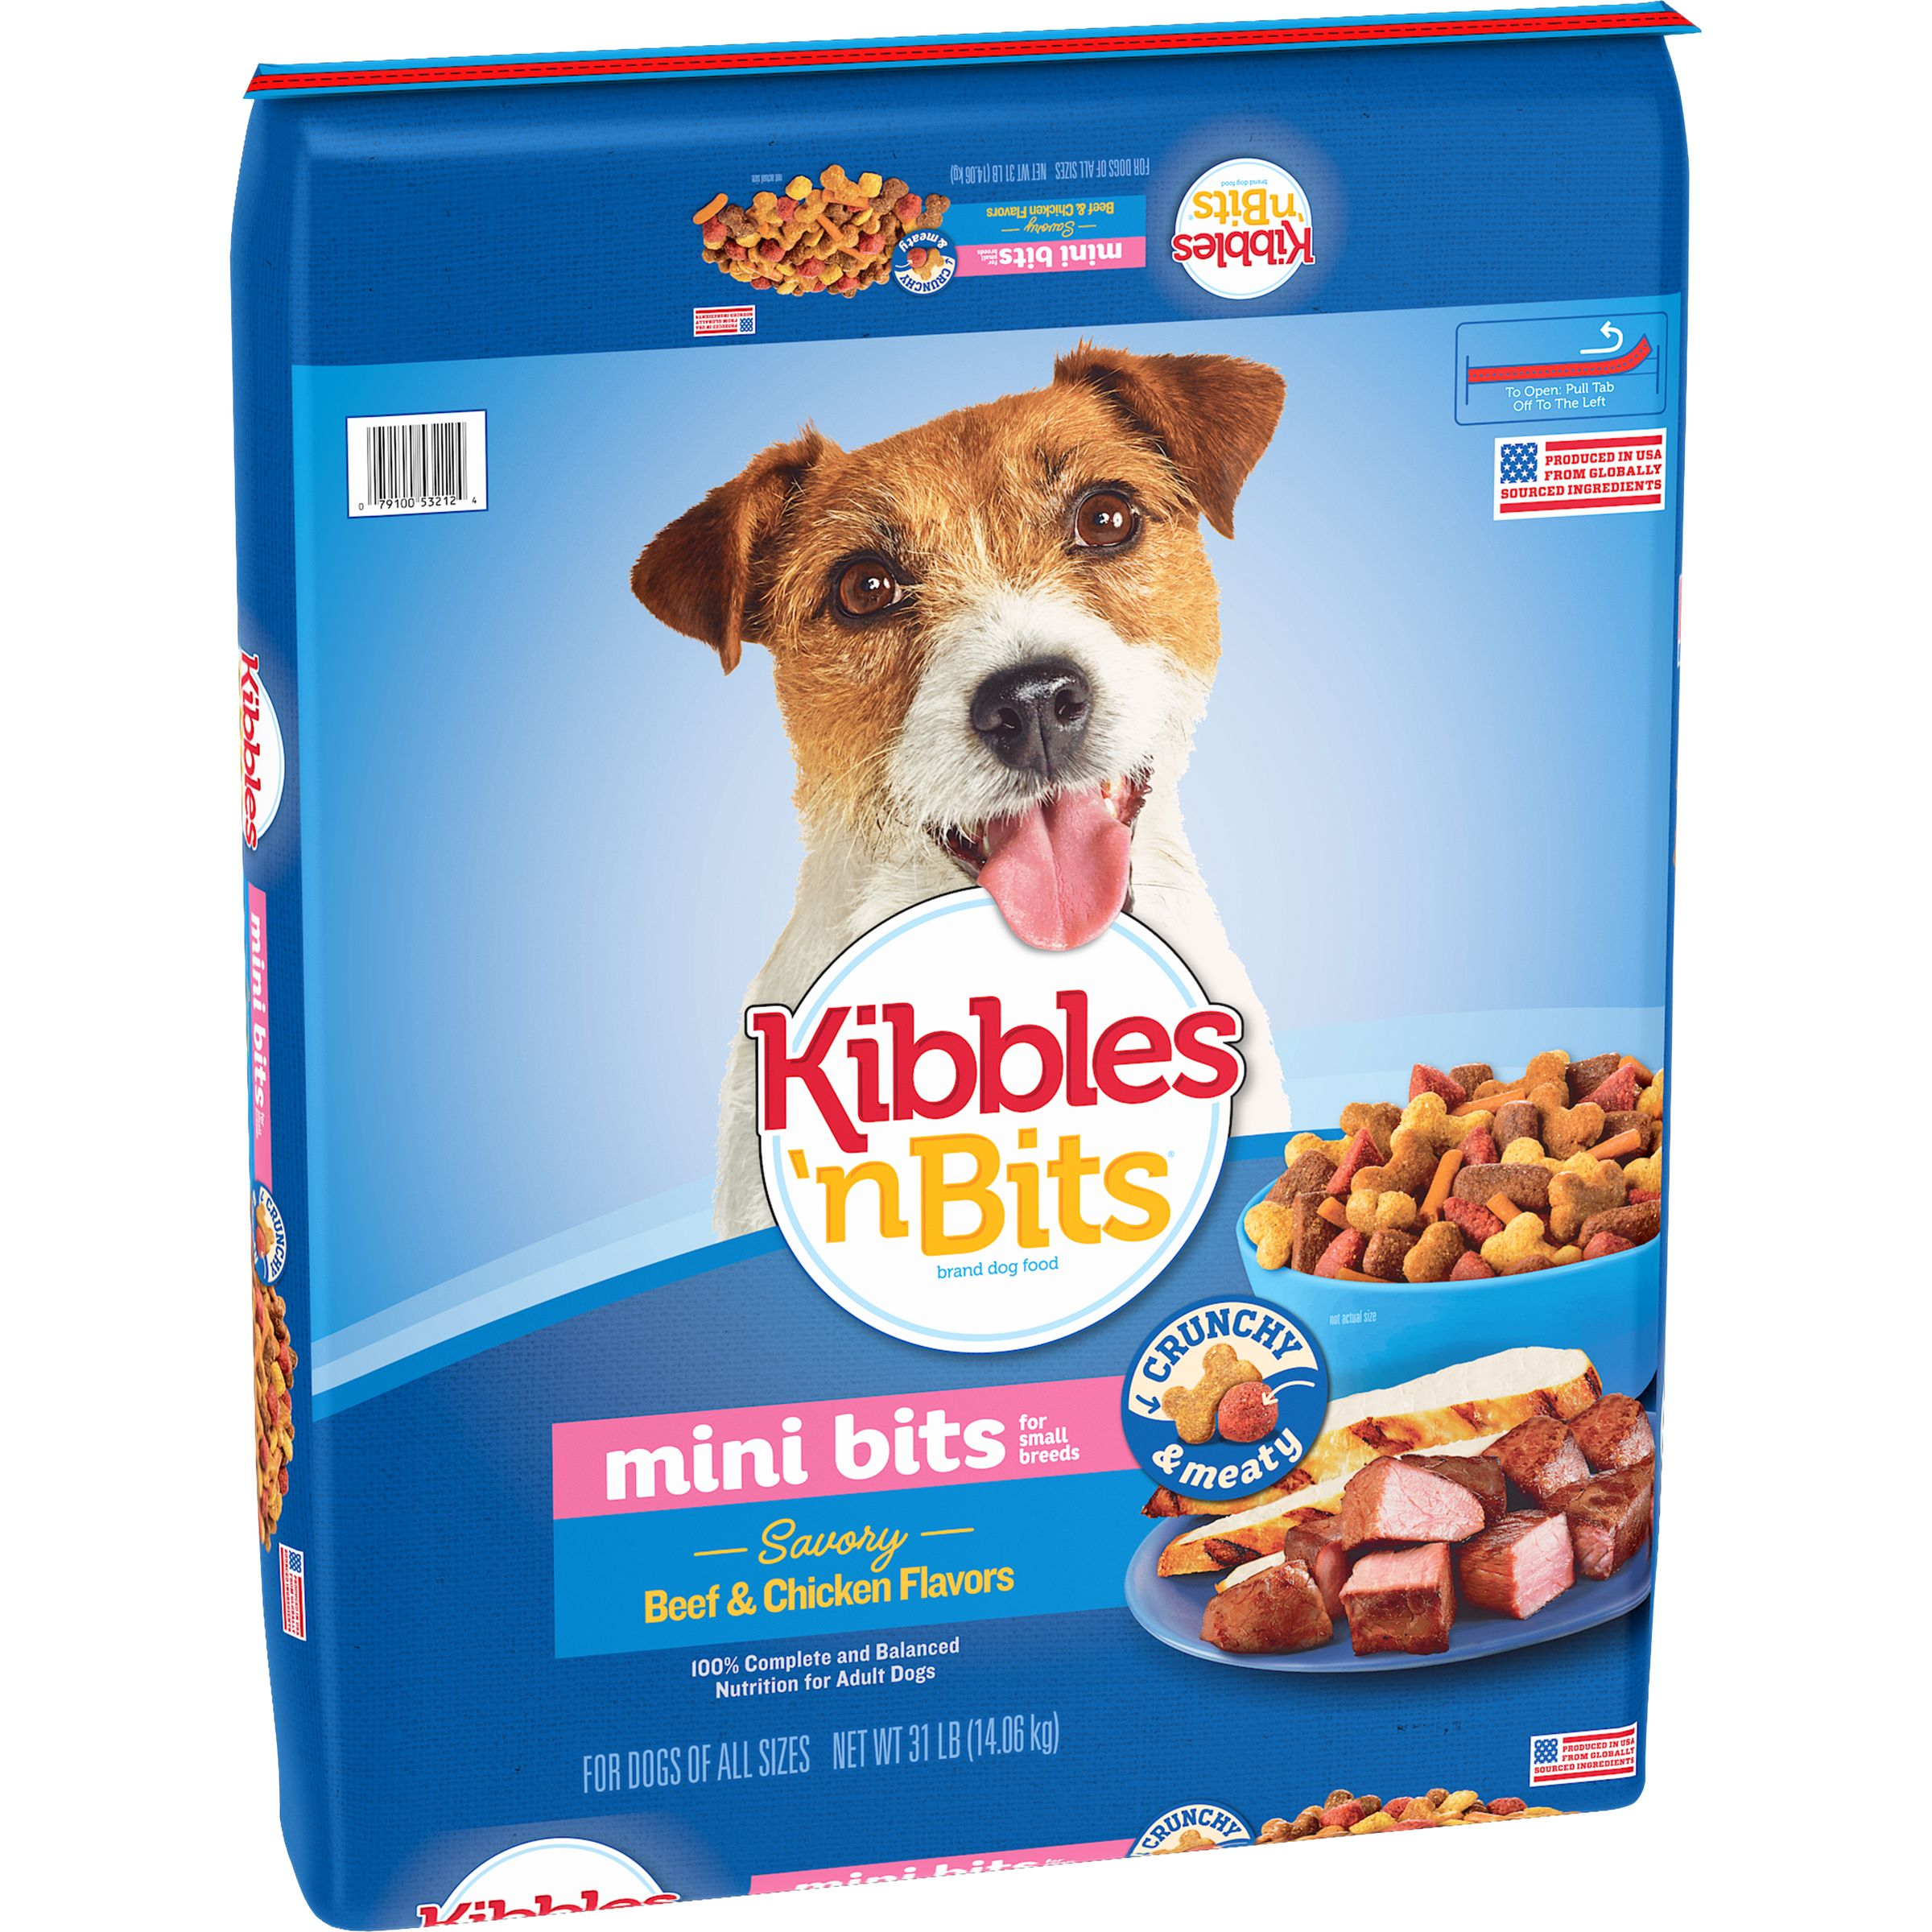 Kibbles 'n Bits Small Breed Mini Bits Savory Beef and Chicken Flavors Dog Food, 31-Pound by The J.M. Smucker Company